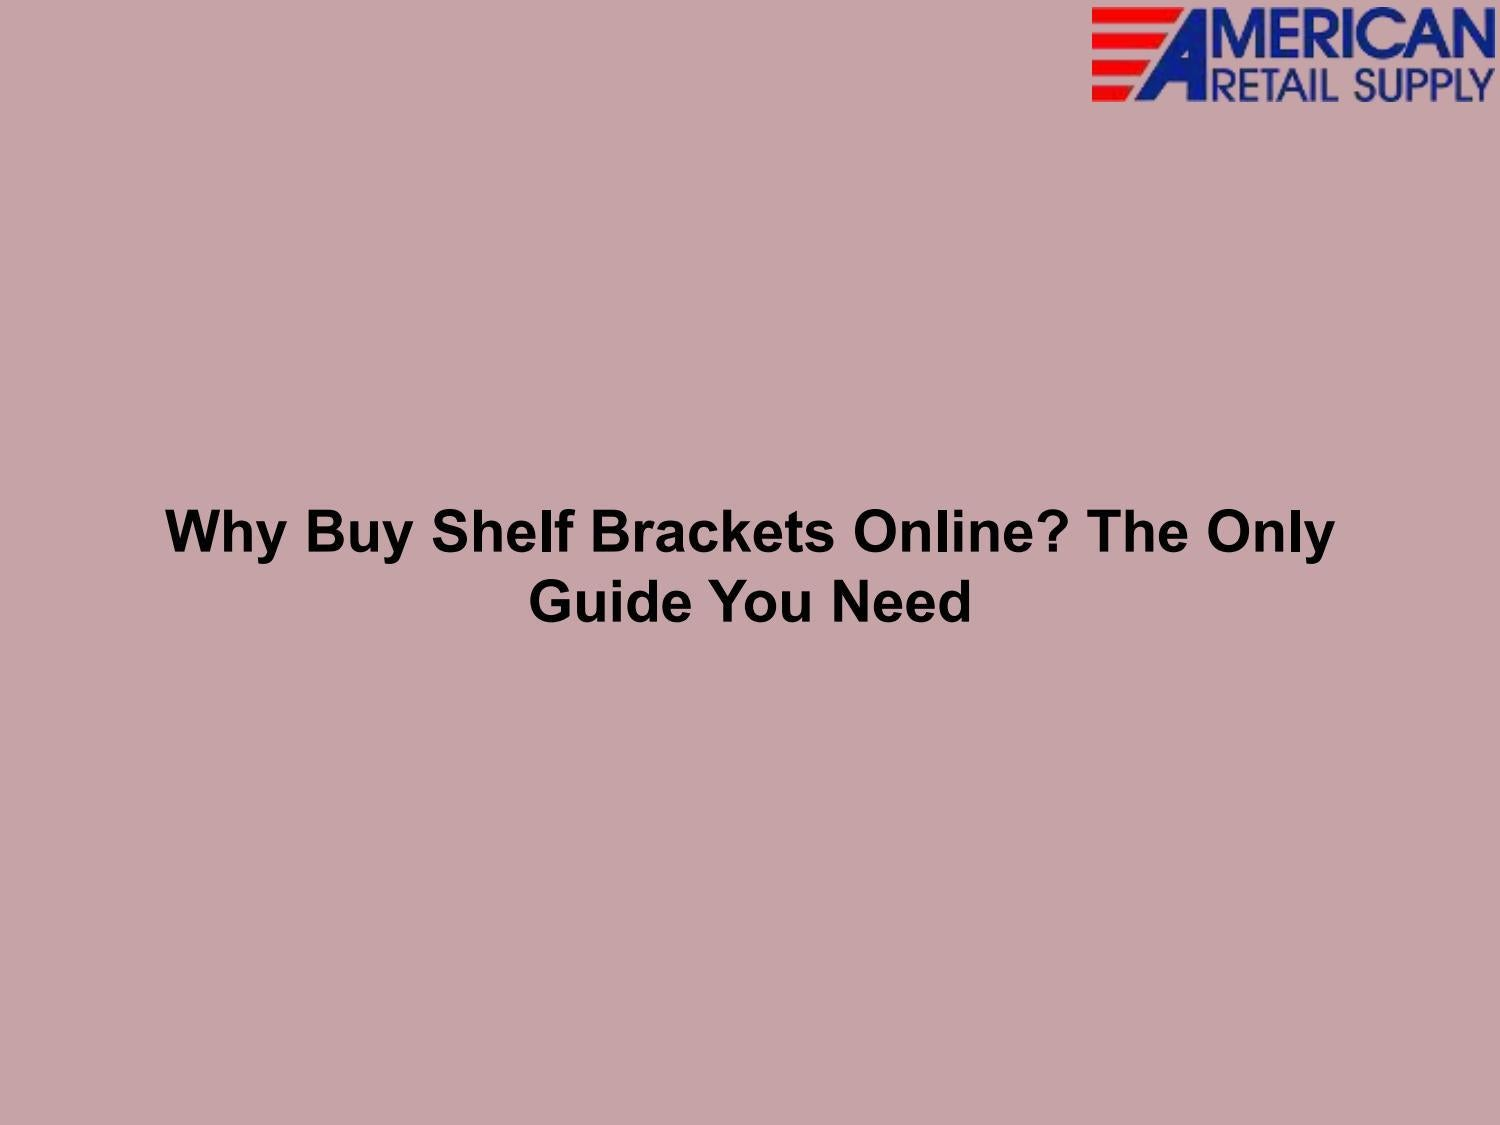 Why Buy Shelf Brackets Online The Only Guide You Need